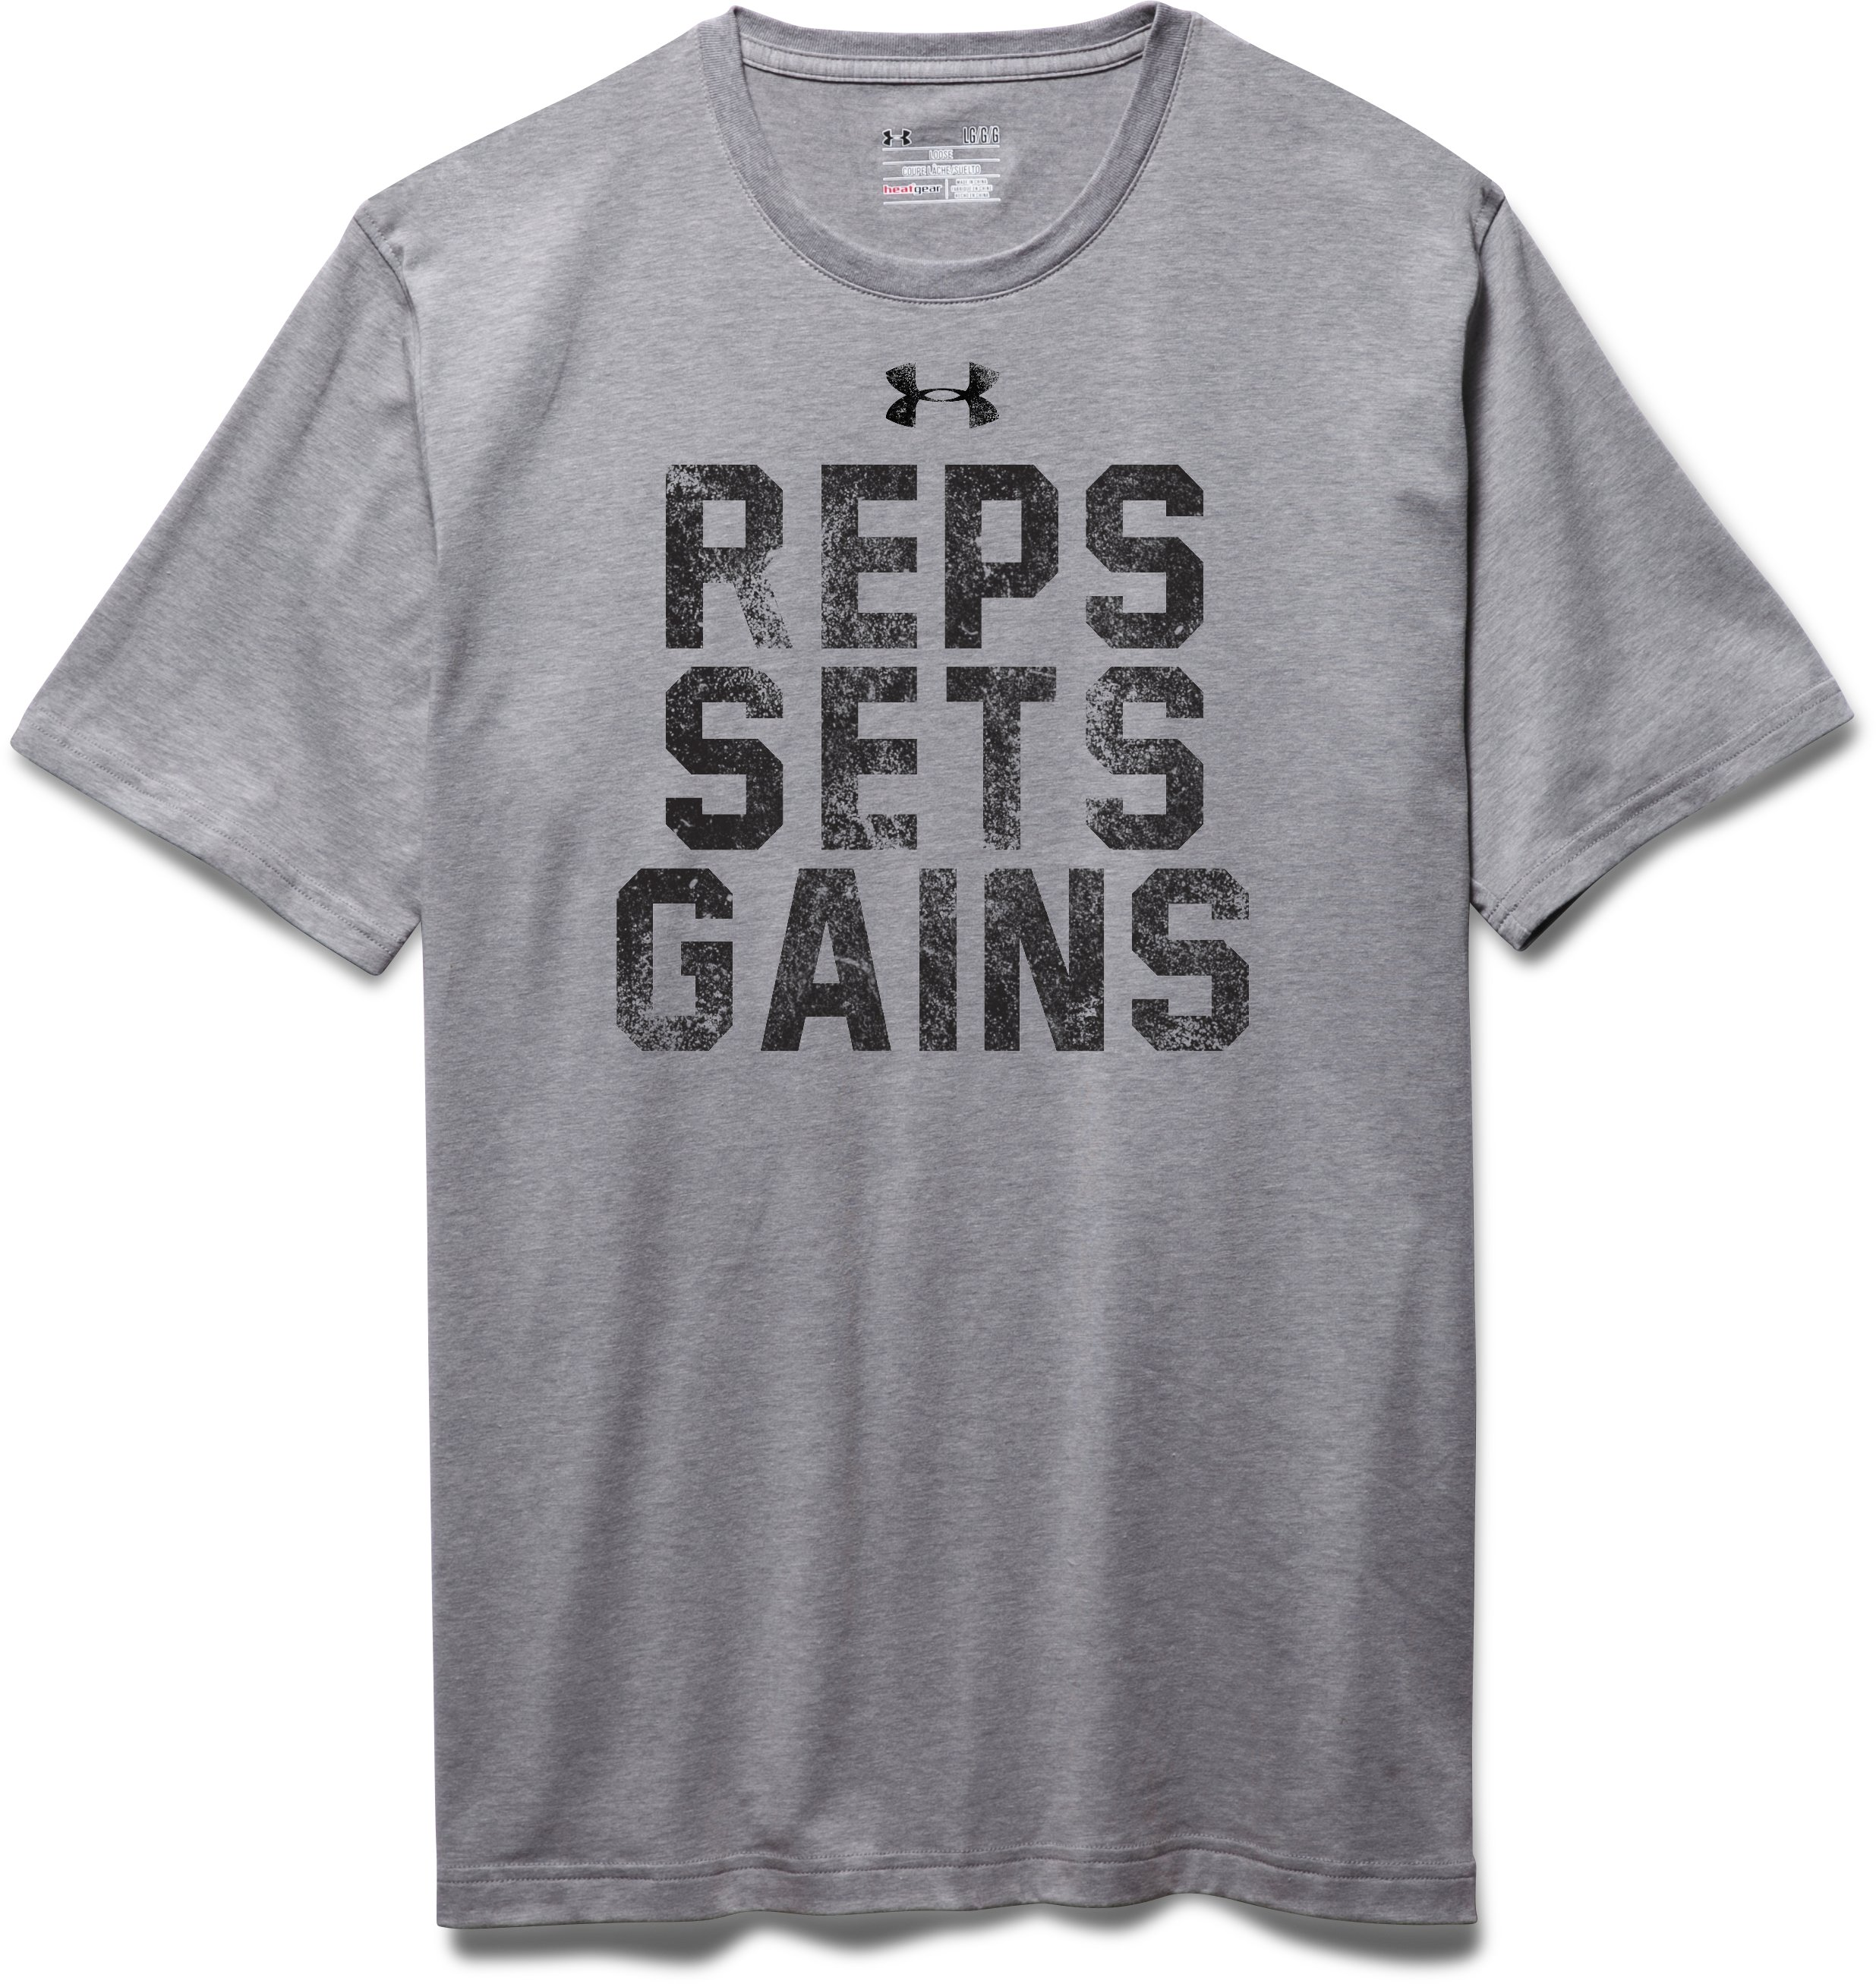 Men's UA Reps, Sets, Gains T-Shirt, True Gray Heather, Laydown